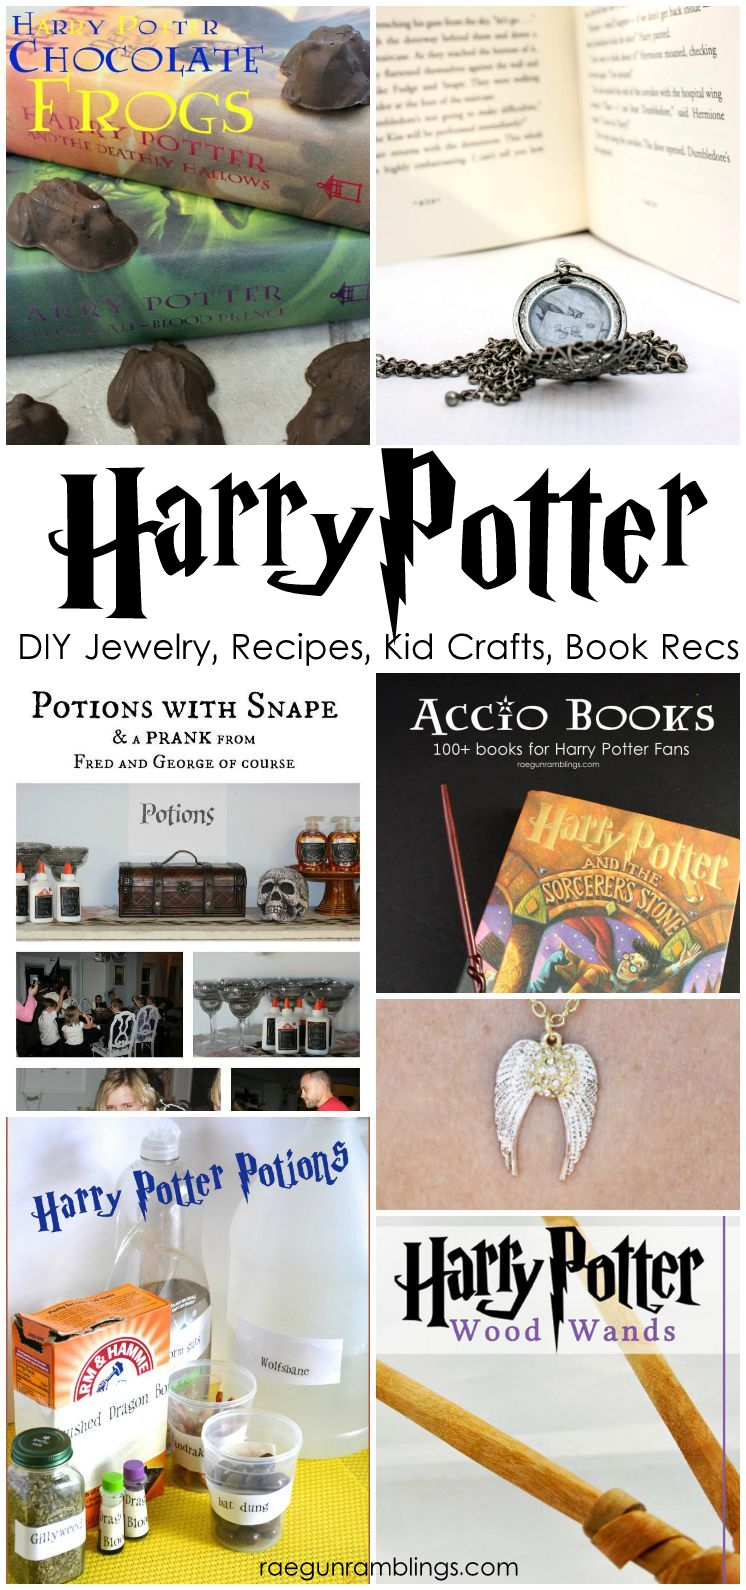 Great Harry Potter projects, party ideas, book recommendations, and craft tutorials